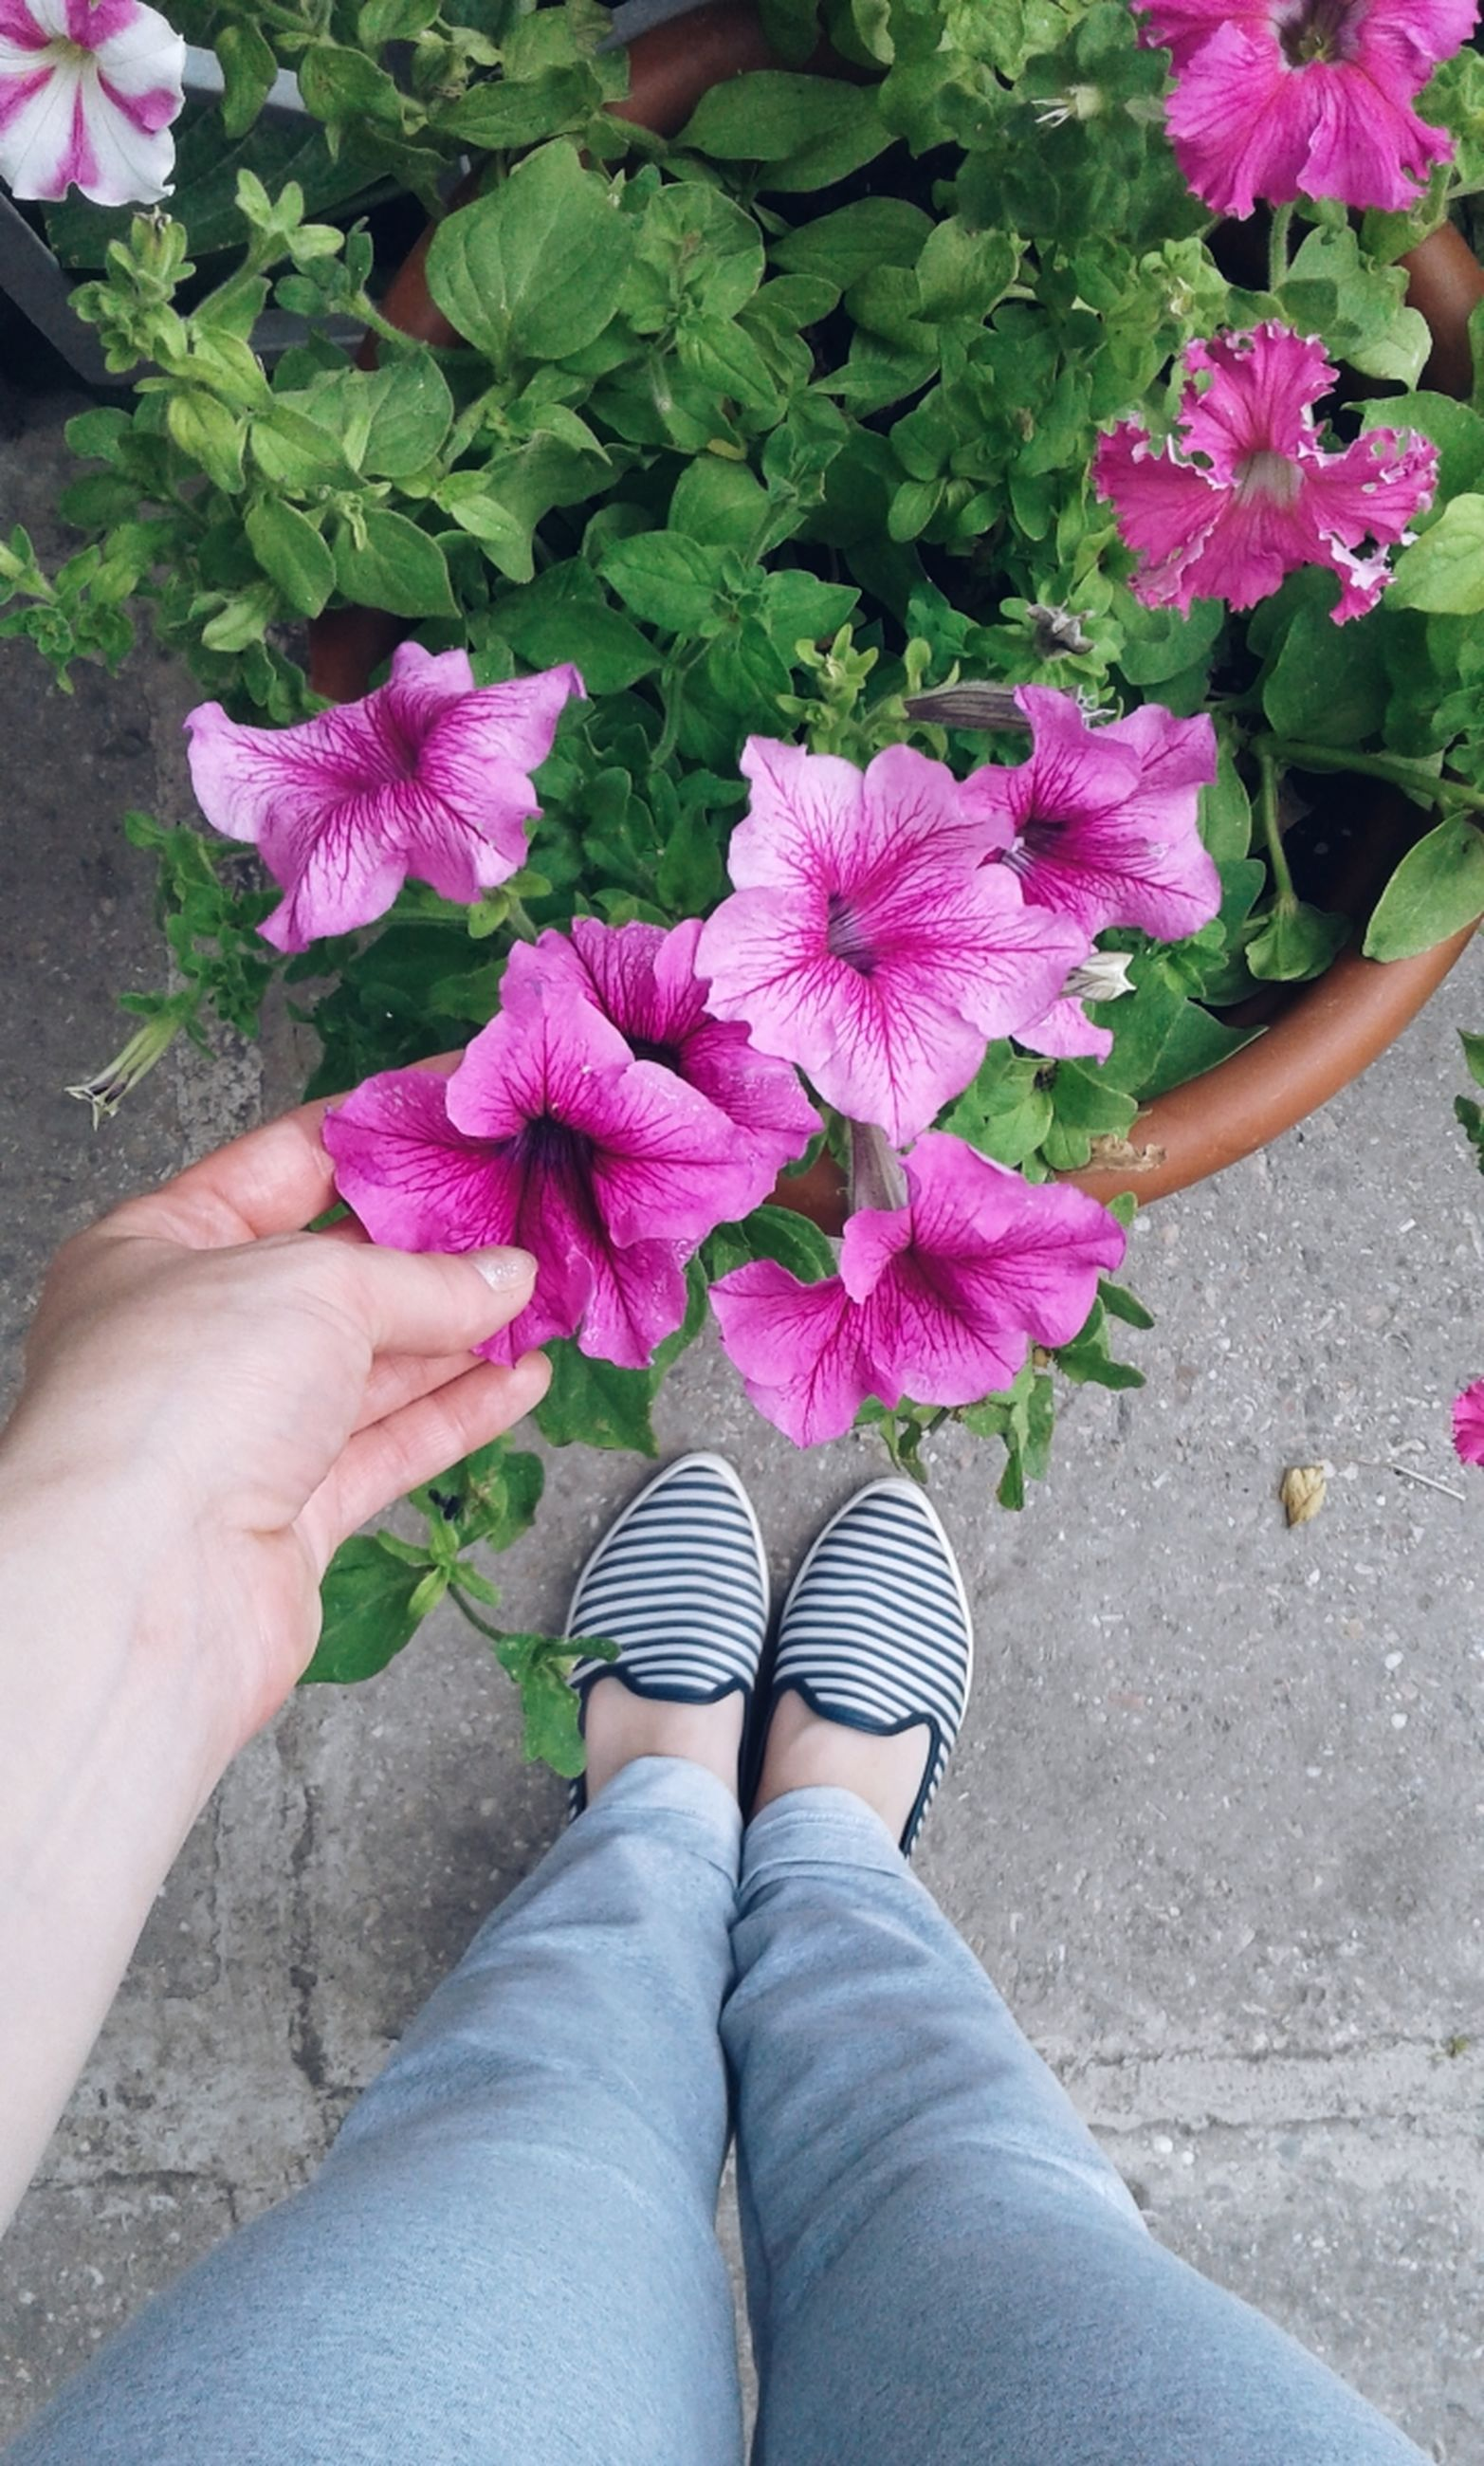 flower, flowering plant, plant, pink color, beauty in nature, freshness, real people, personal perspective, one person, fragility, vulnerability, human body part, nature, flower head, low section, petal, body part, inflorescence, lifestyles, outdoors, hand, purple, human limb